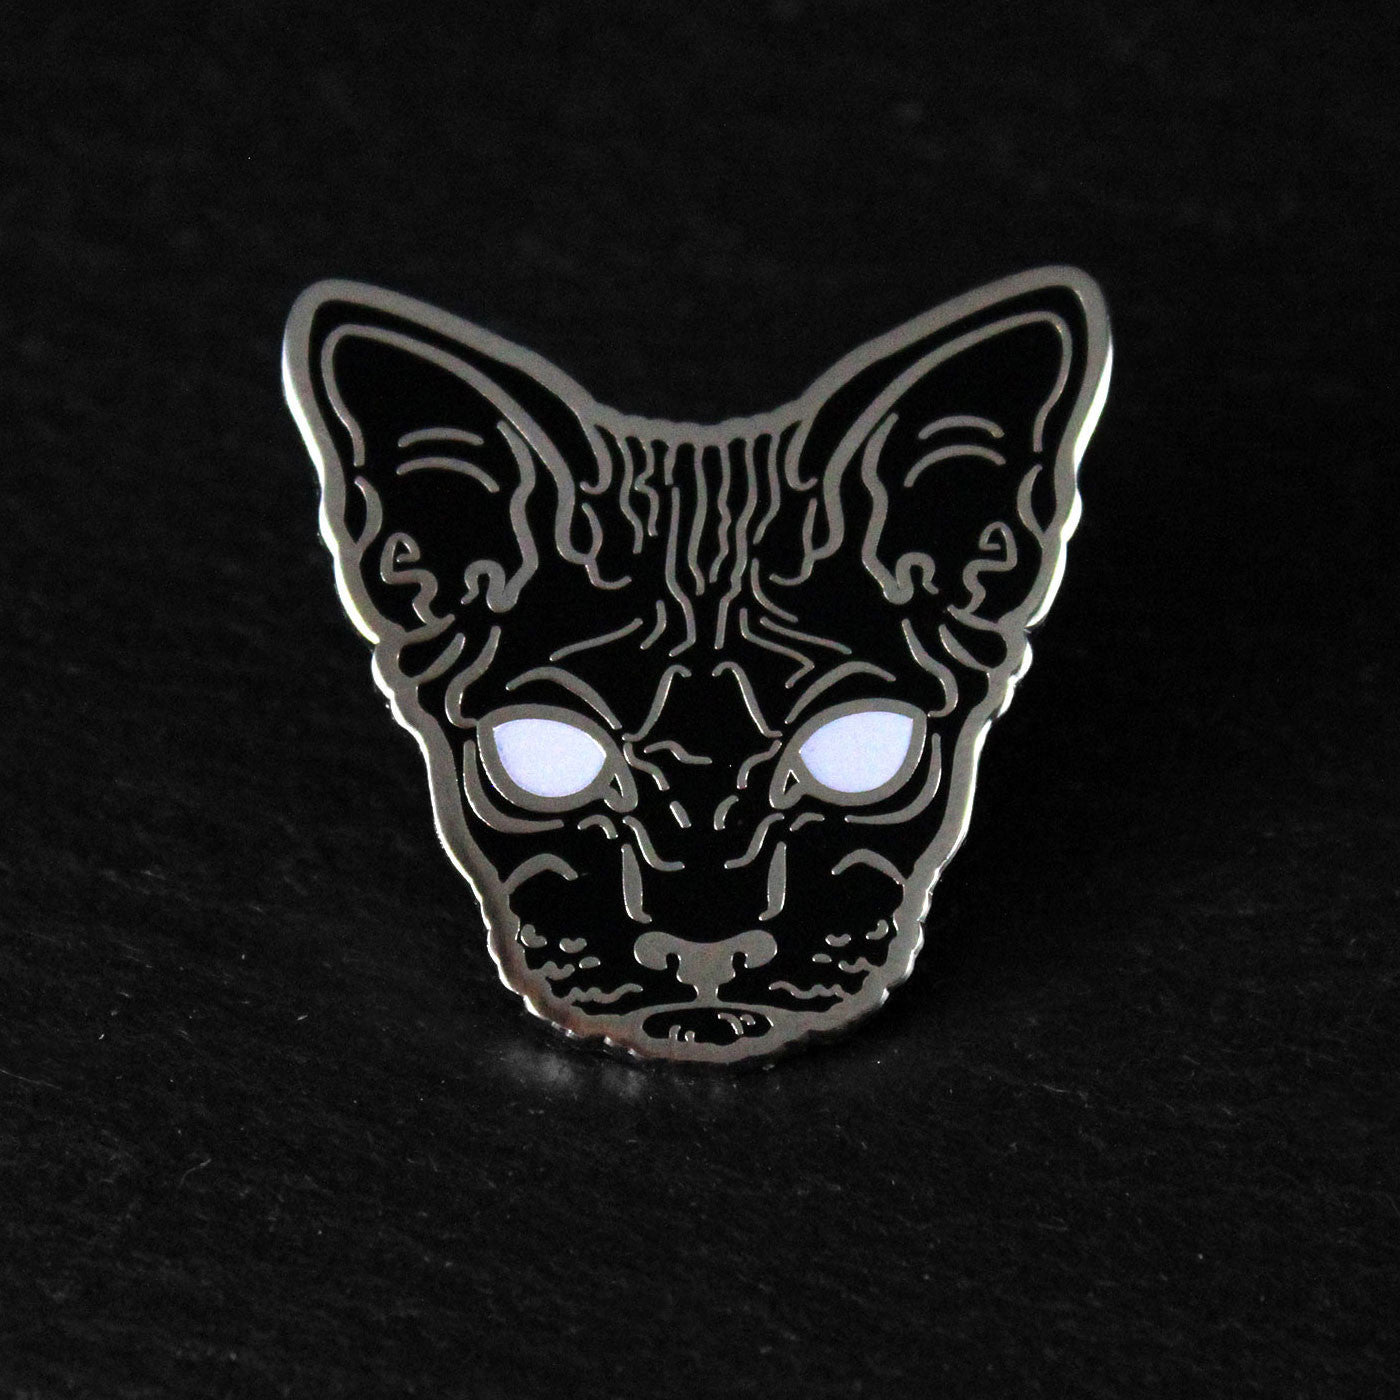 black goth glow hairless sphynx cat enamel pin